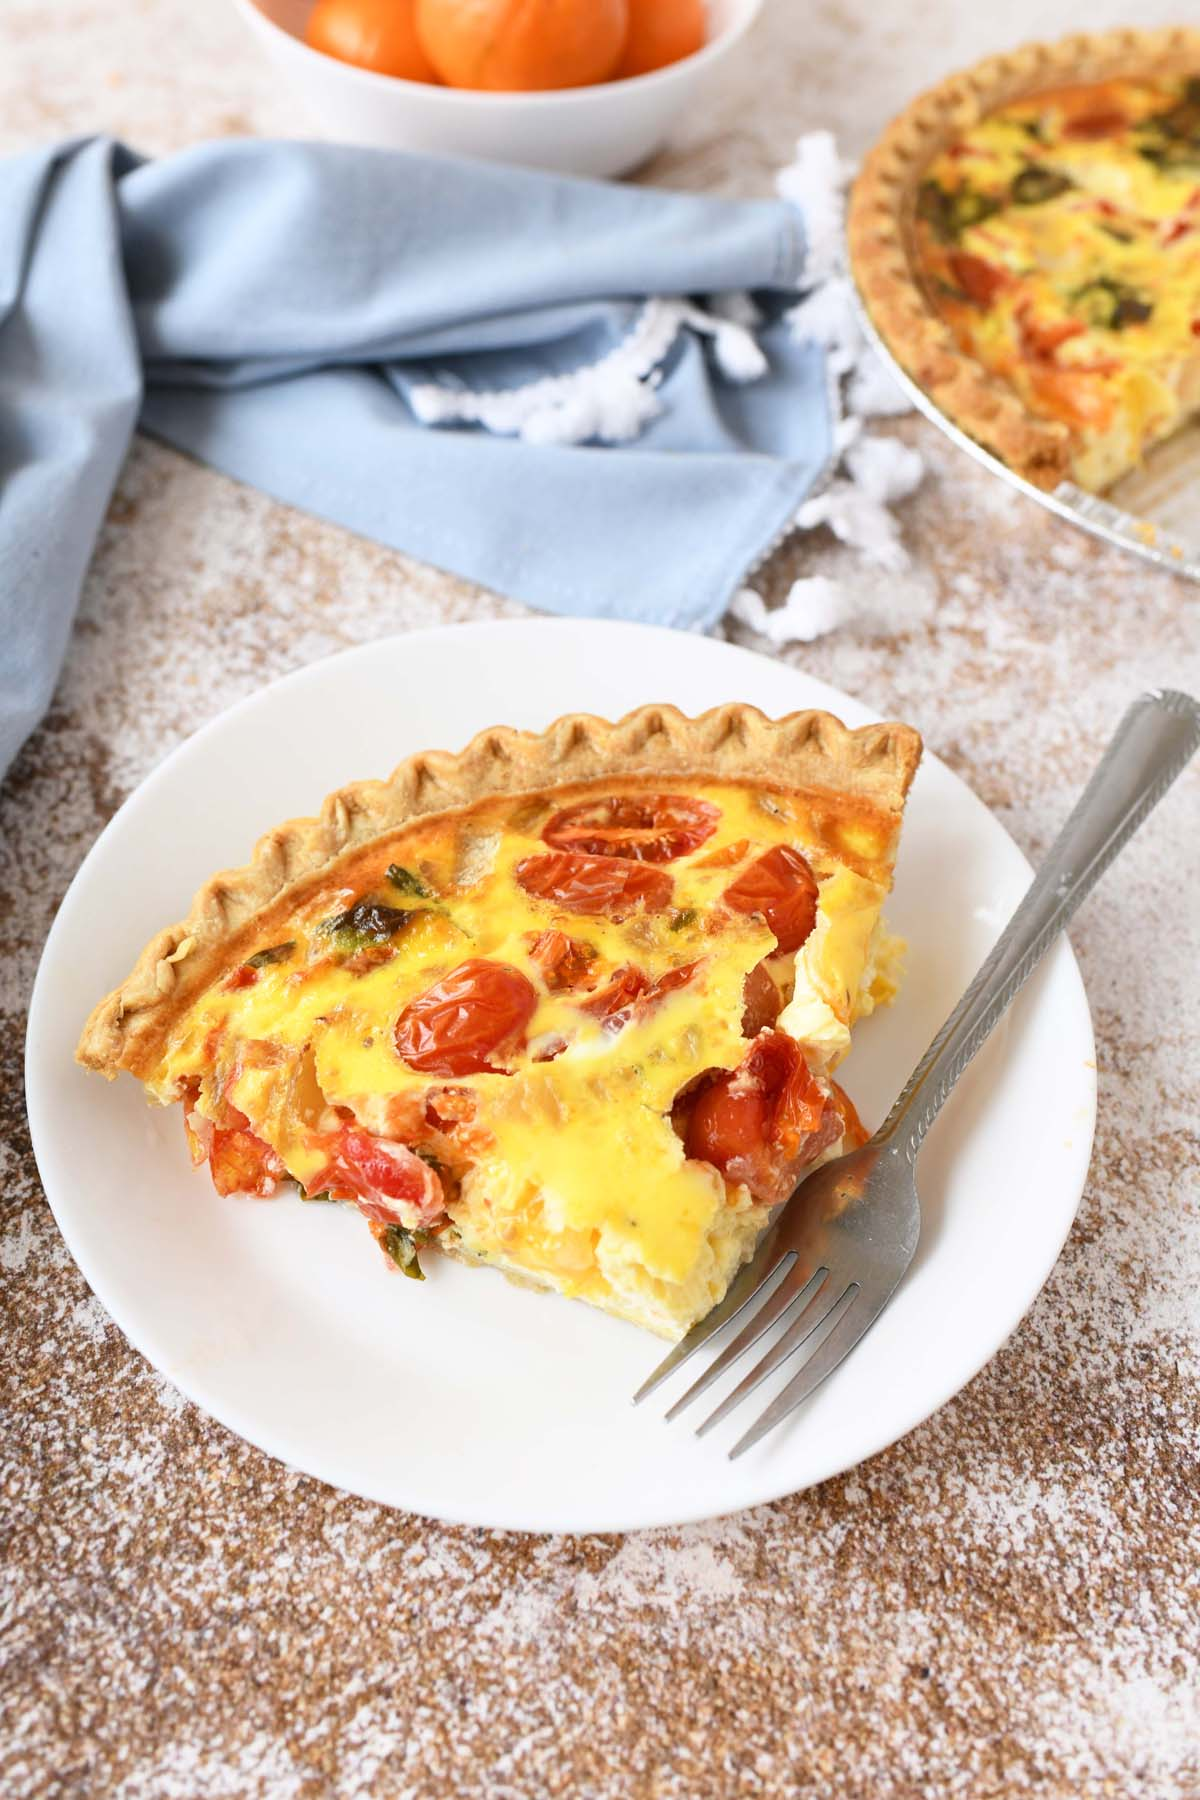 Tomato Feta Quiche on a white plate with a fork.